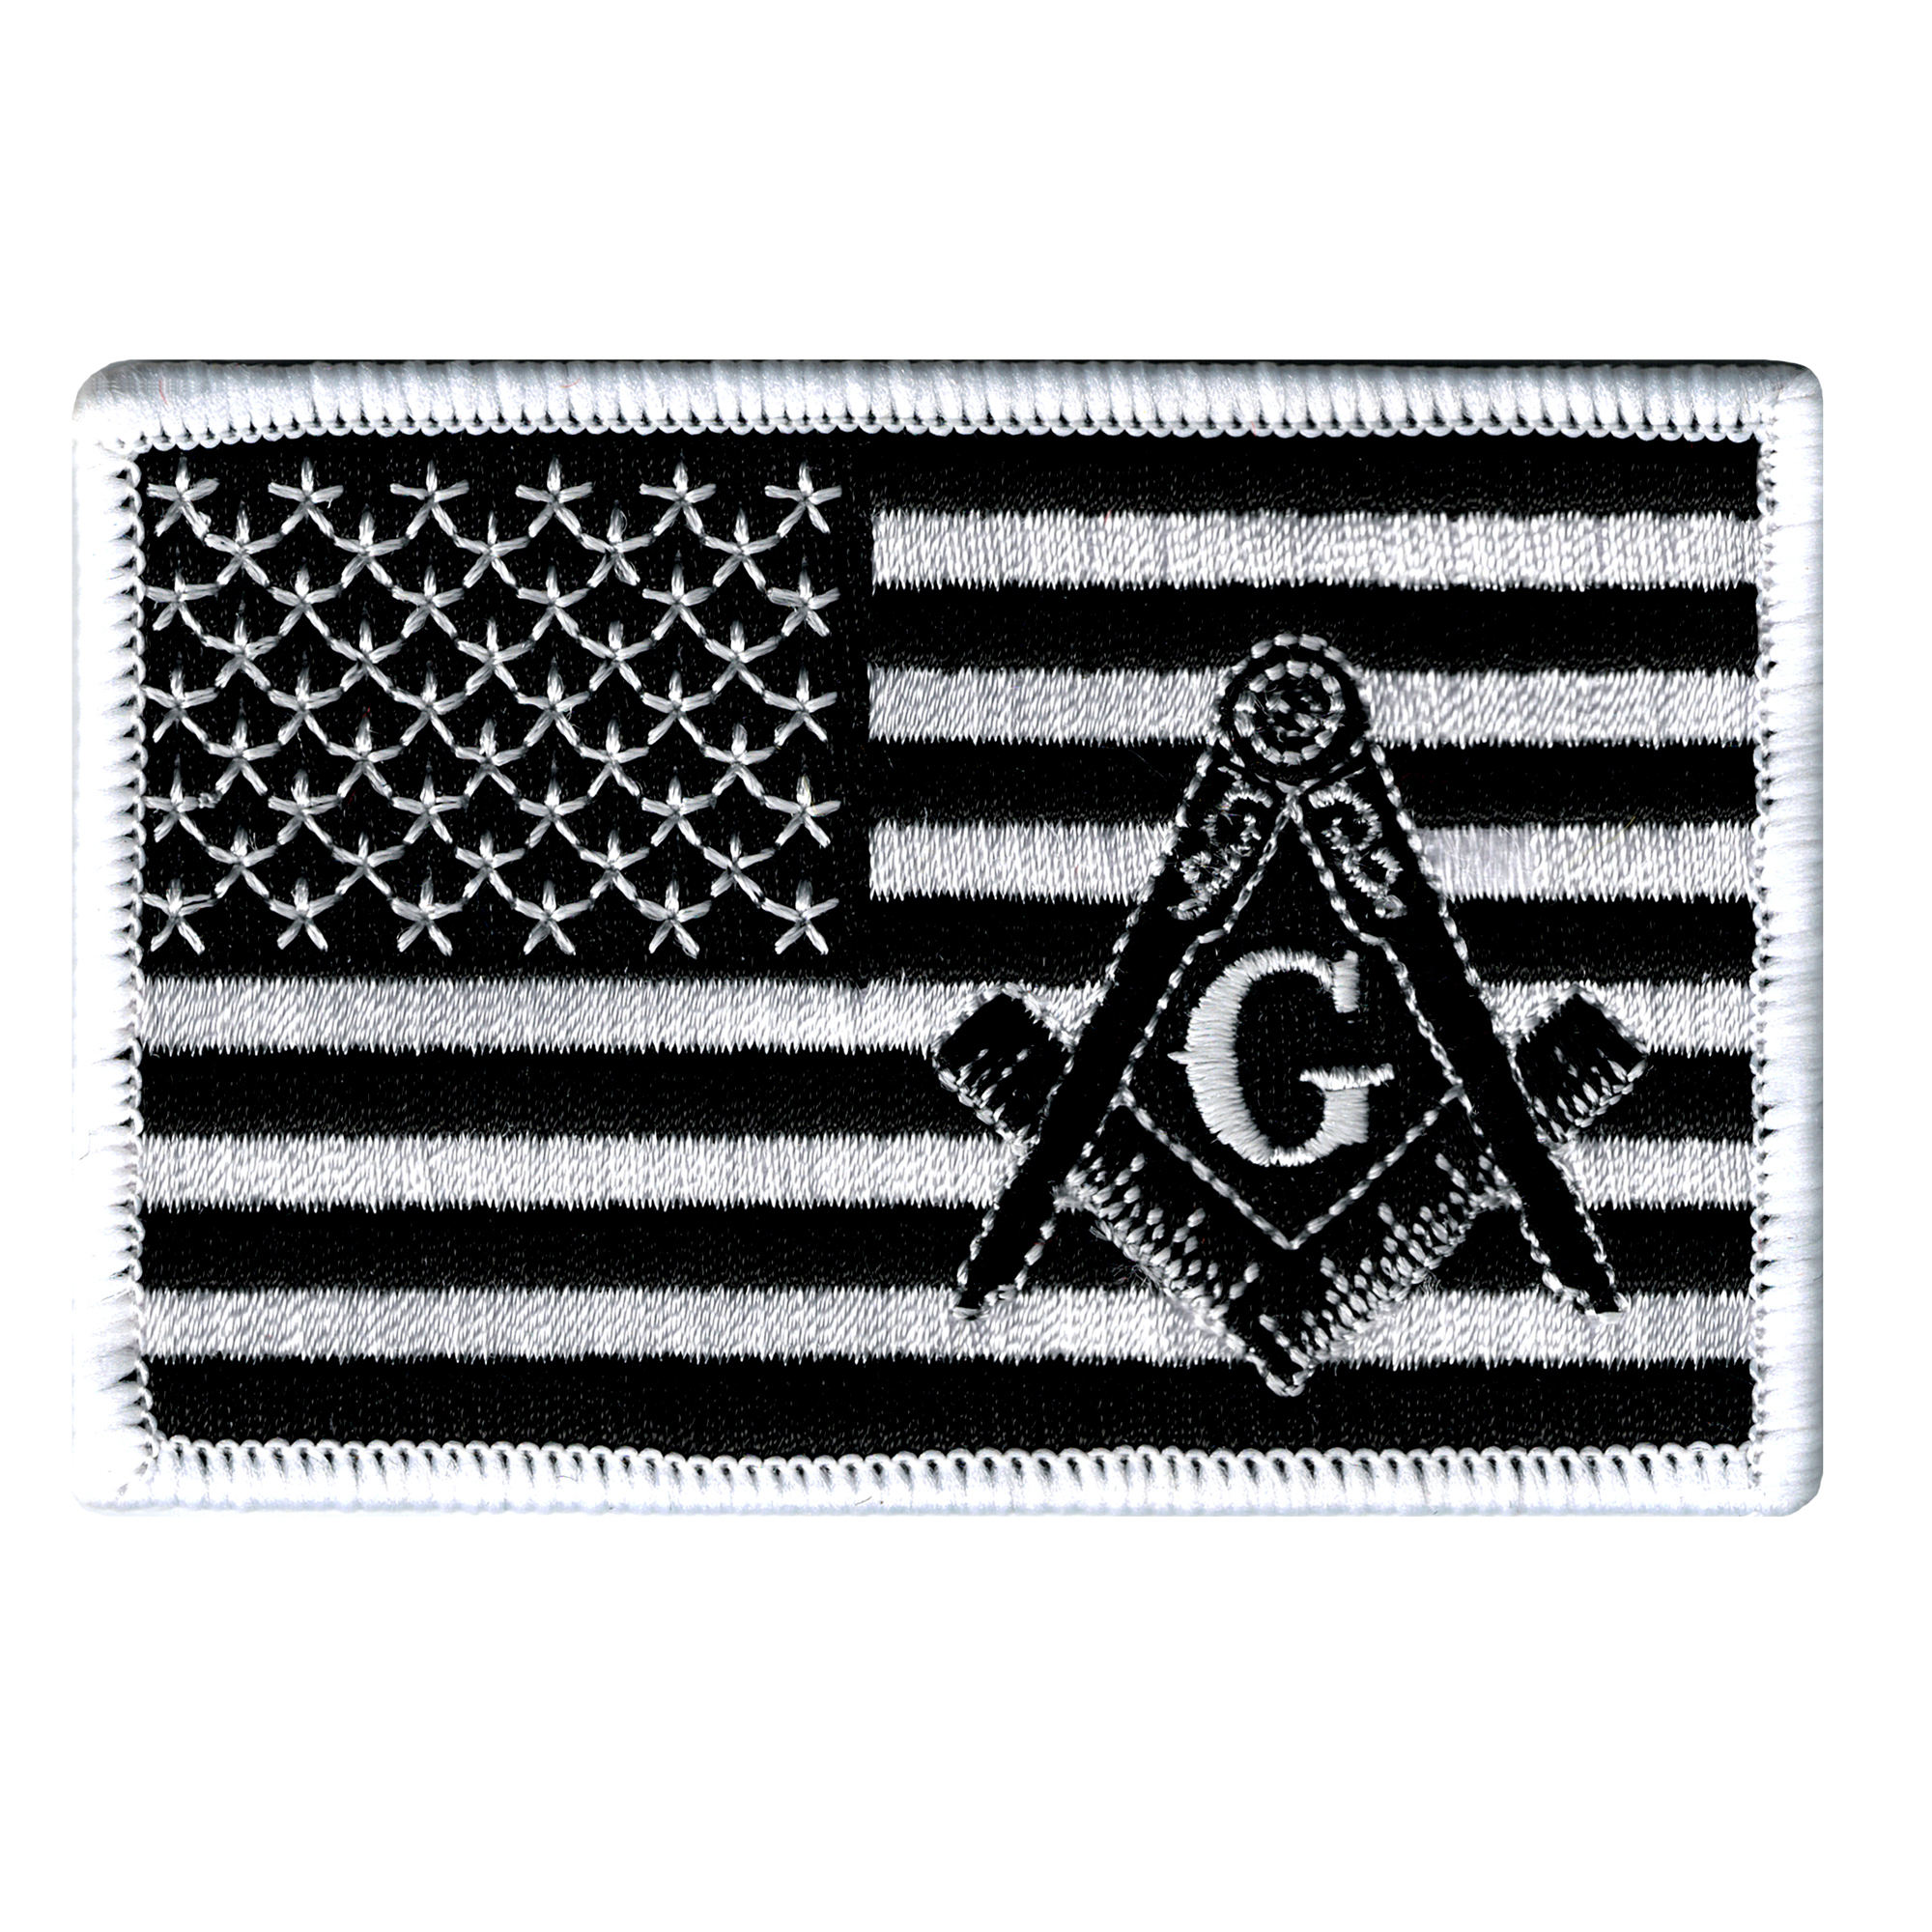 American Flag Iron-on Embroidered Patch Black Masonic Square and Compass